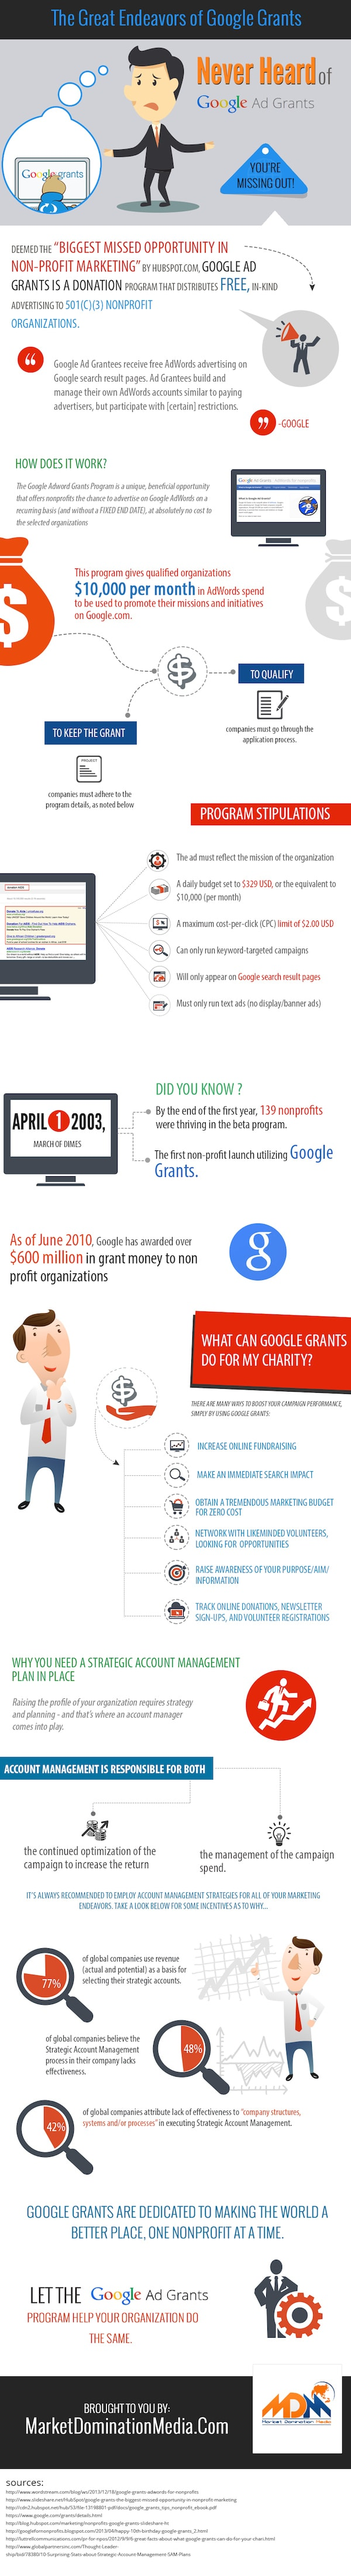 Nonprofit organizations can apply for the grant from Google as long as they fall within the organization eligibility requirements outlined by Google. The ads are displayed in the same search results as the paid advertisers